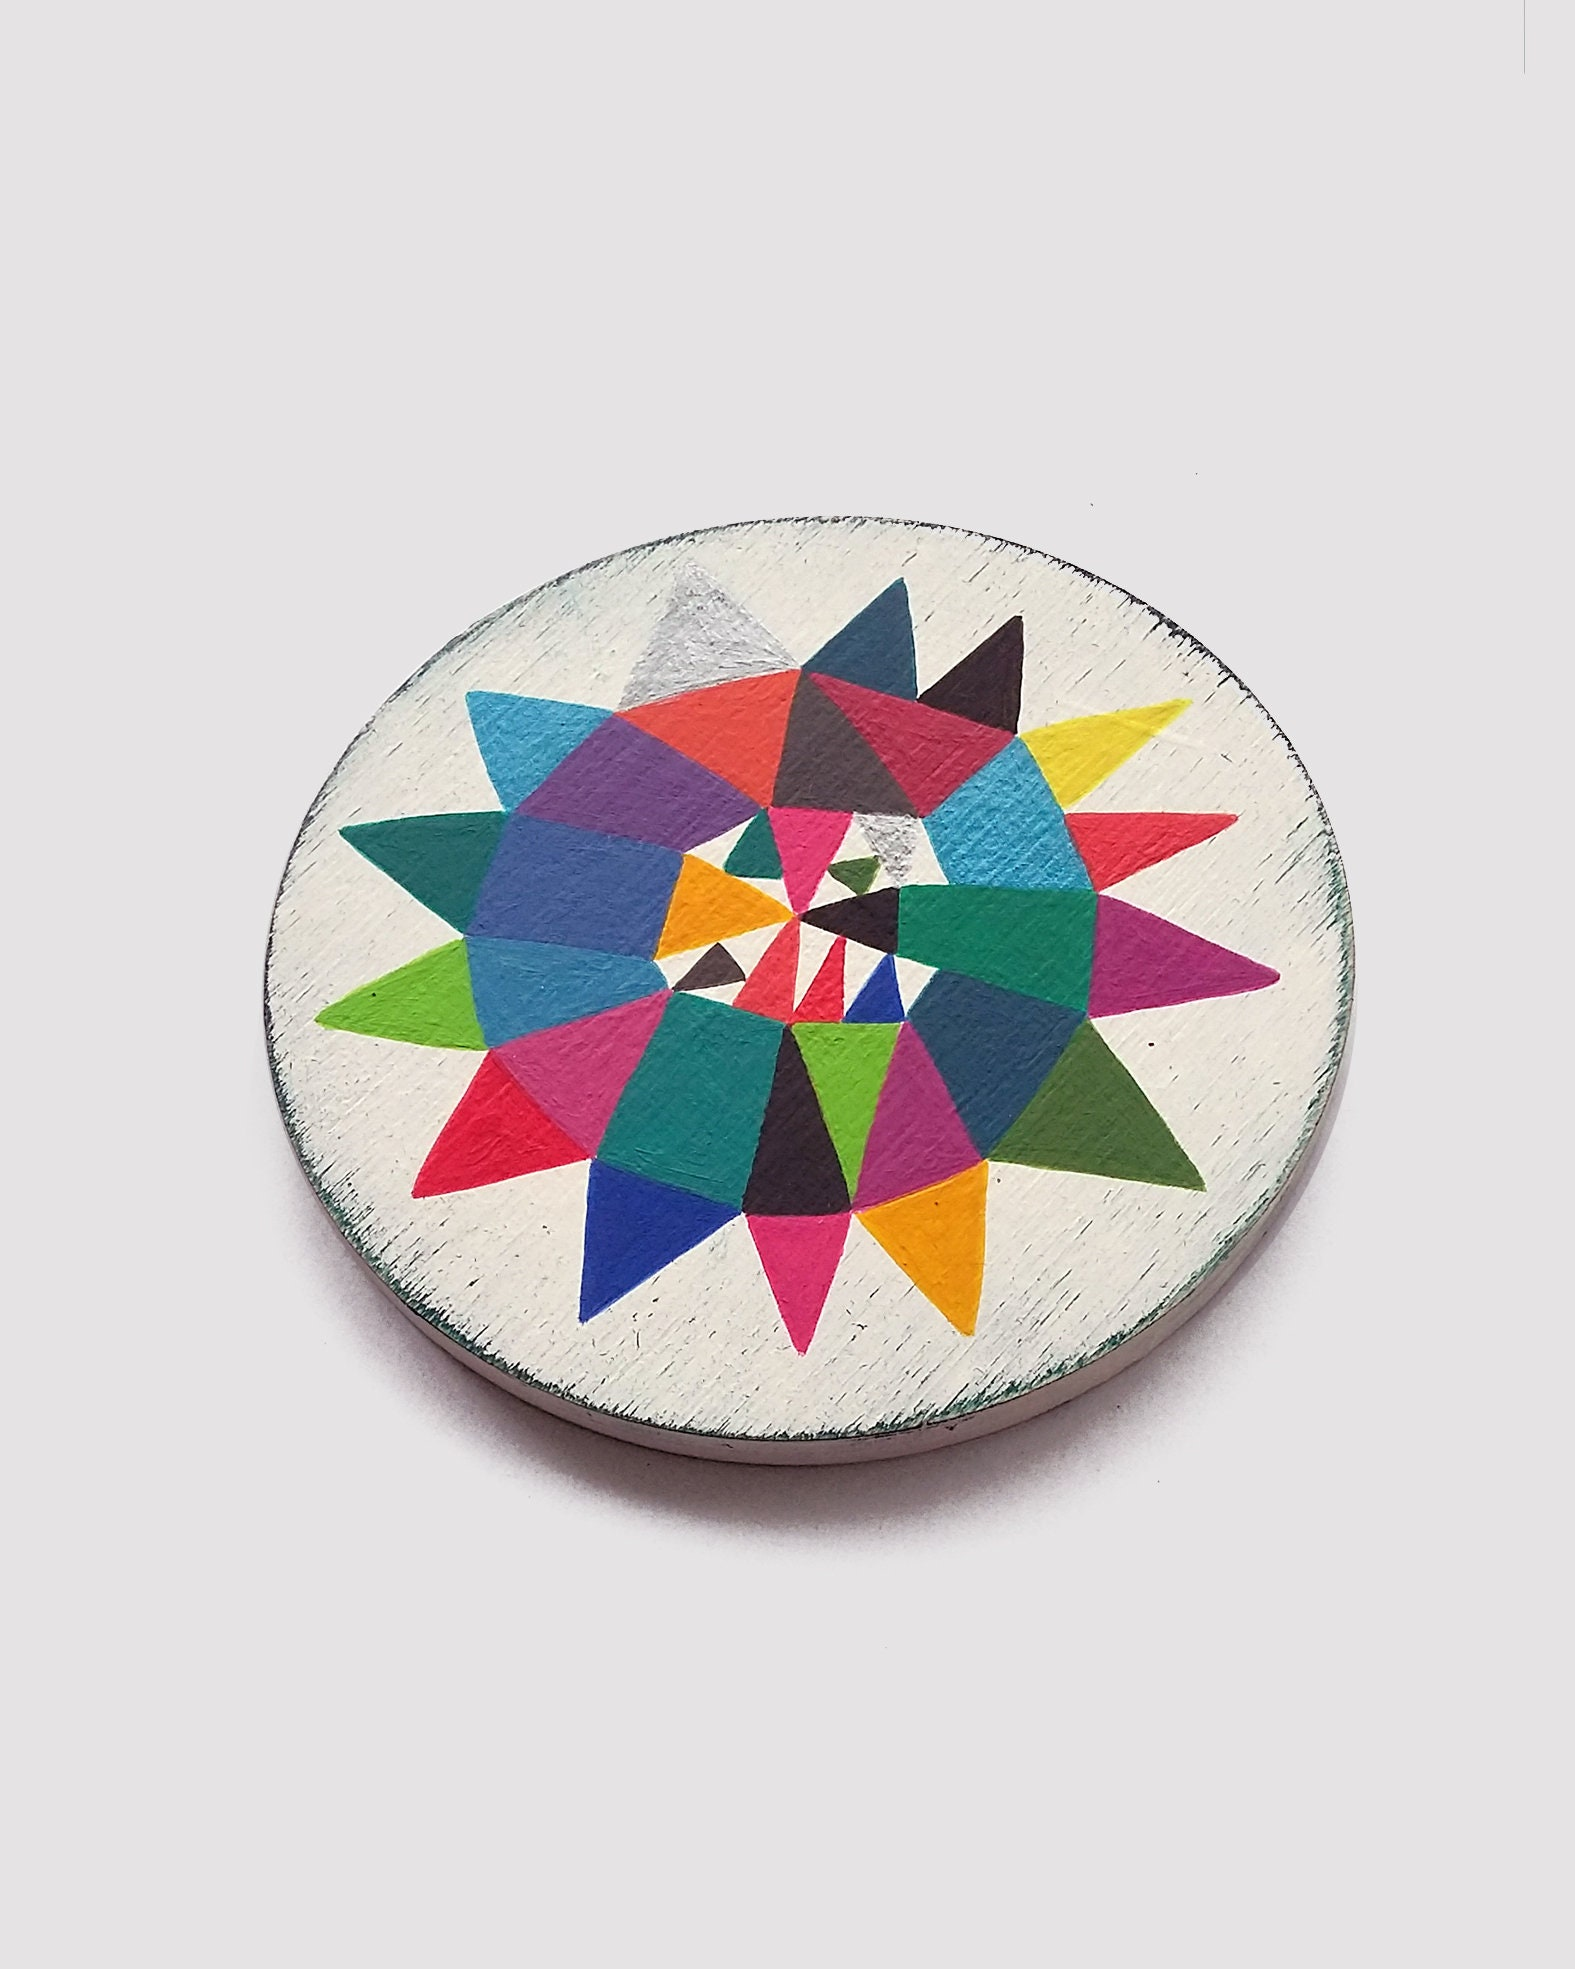 Star_007, small colourful geometric art - product images  of